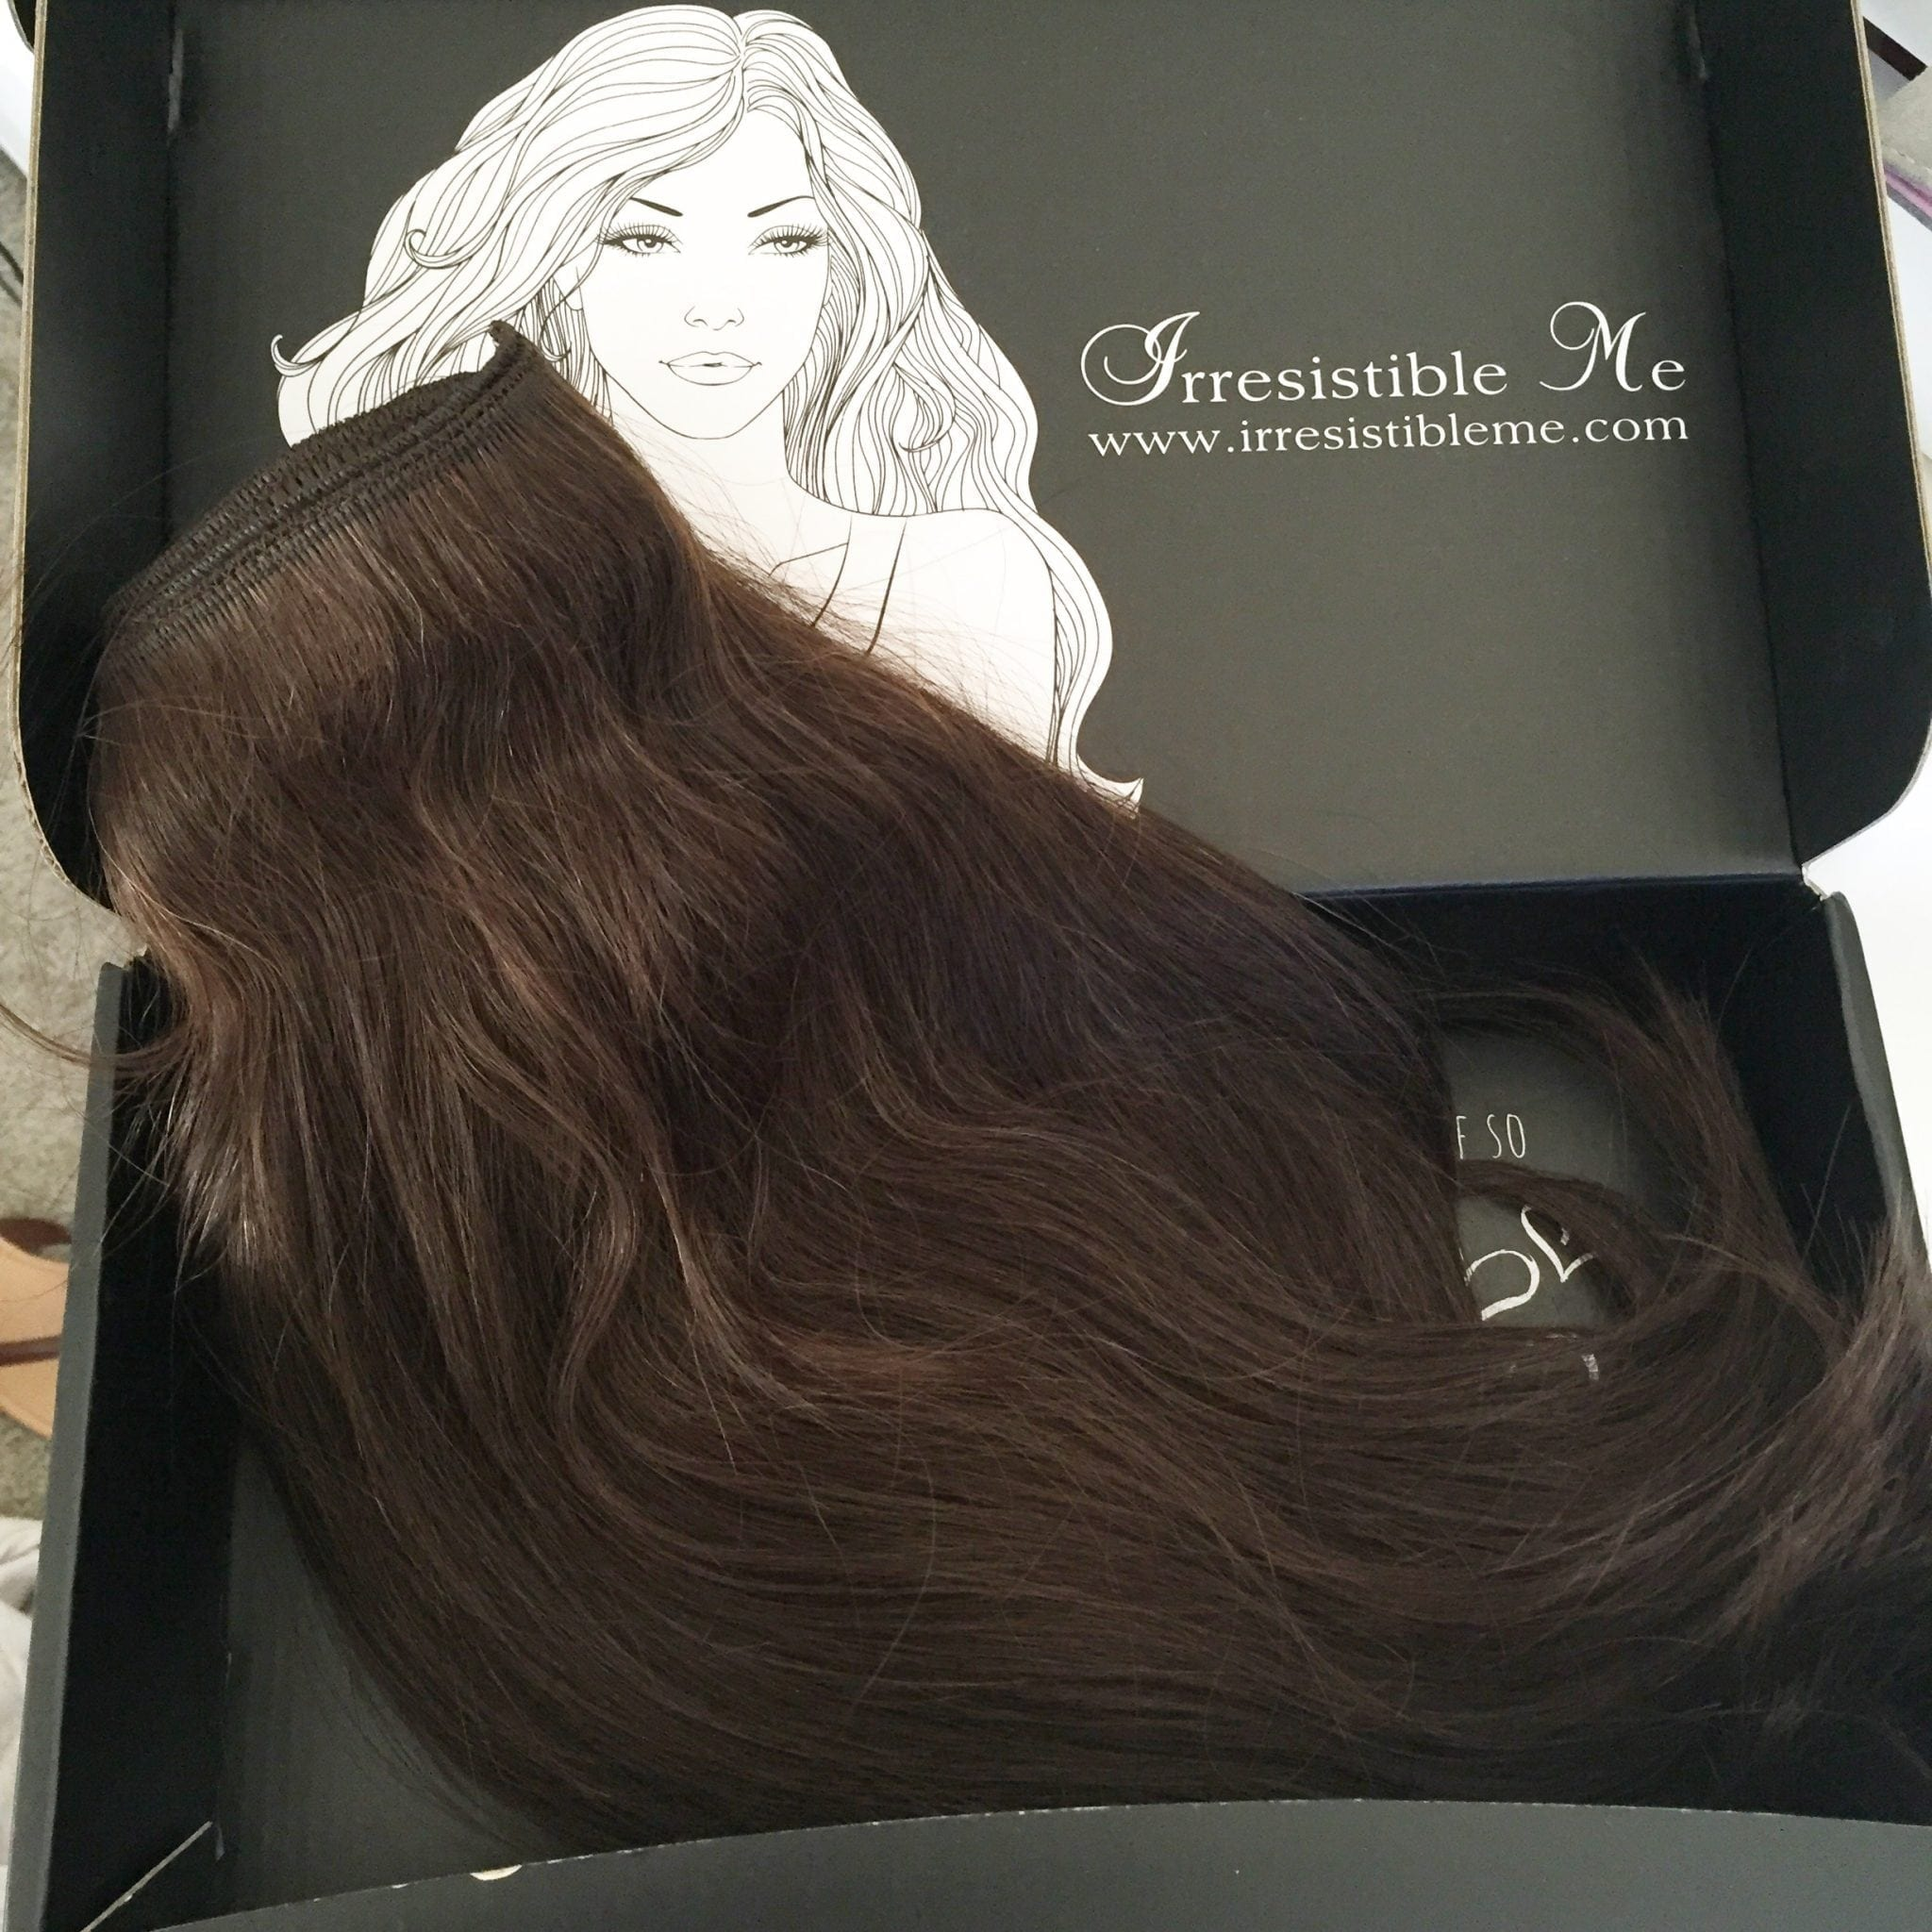 Irresistible me hair extensions review jasmine maria irresistible me royal remy hair extensions review pmusecretfo Gallery